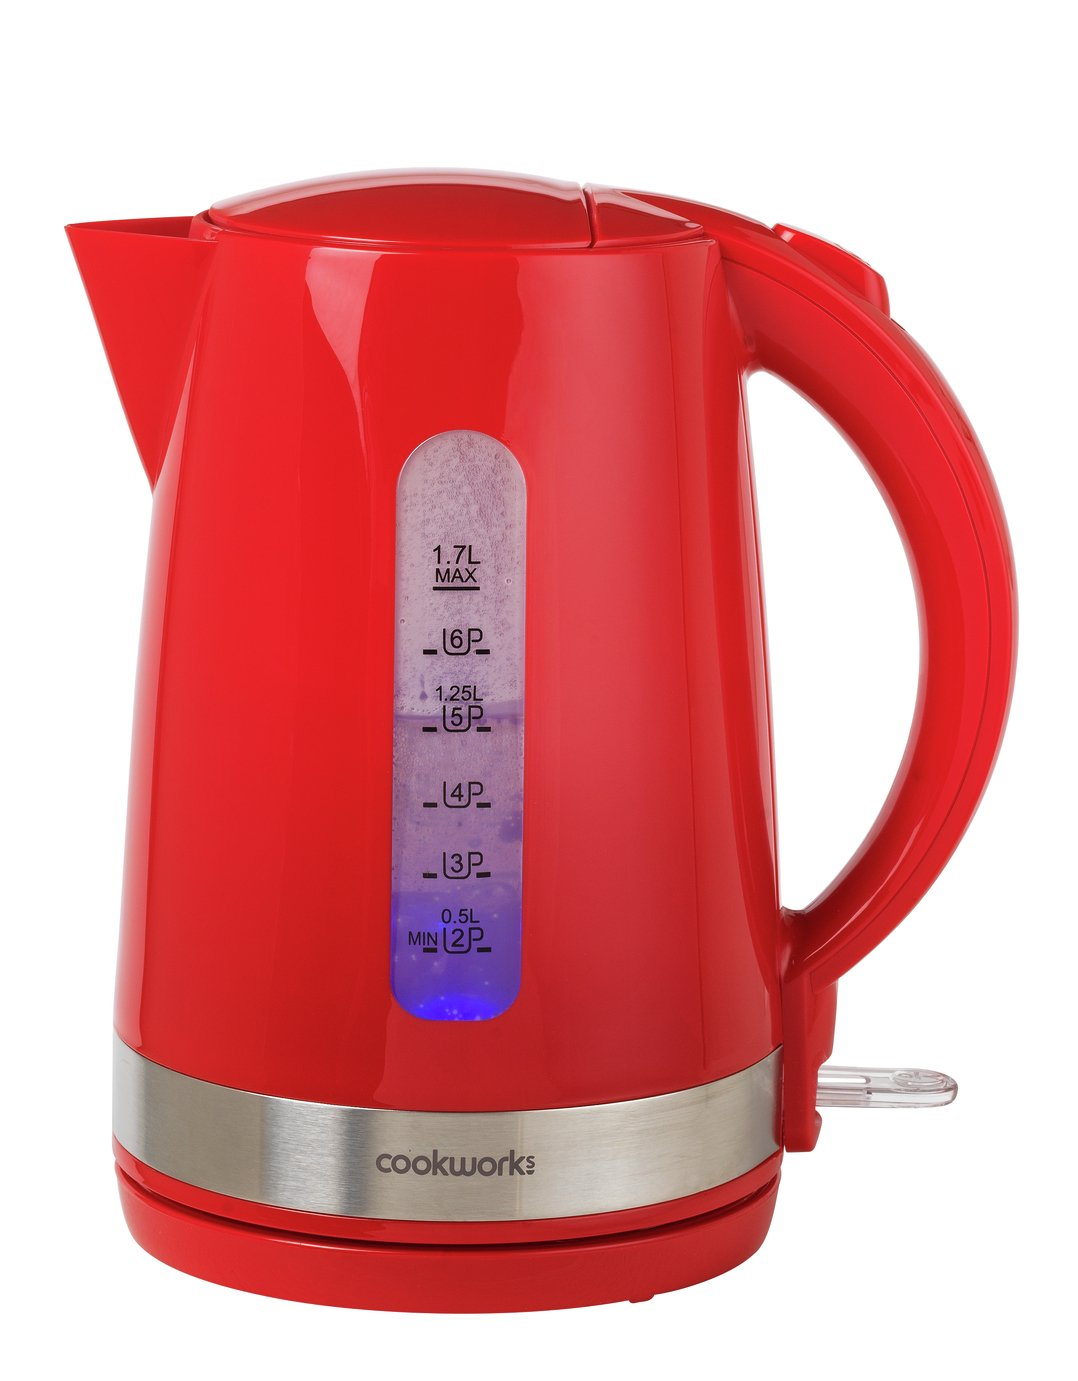 Cookworks Illumination Kettle review